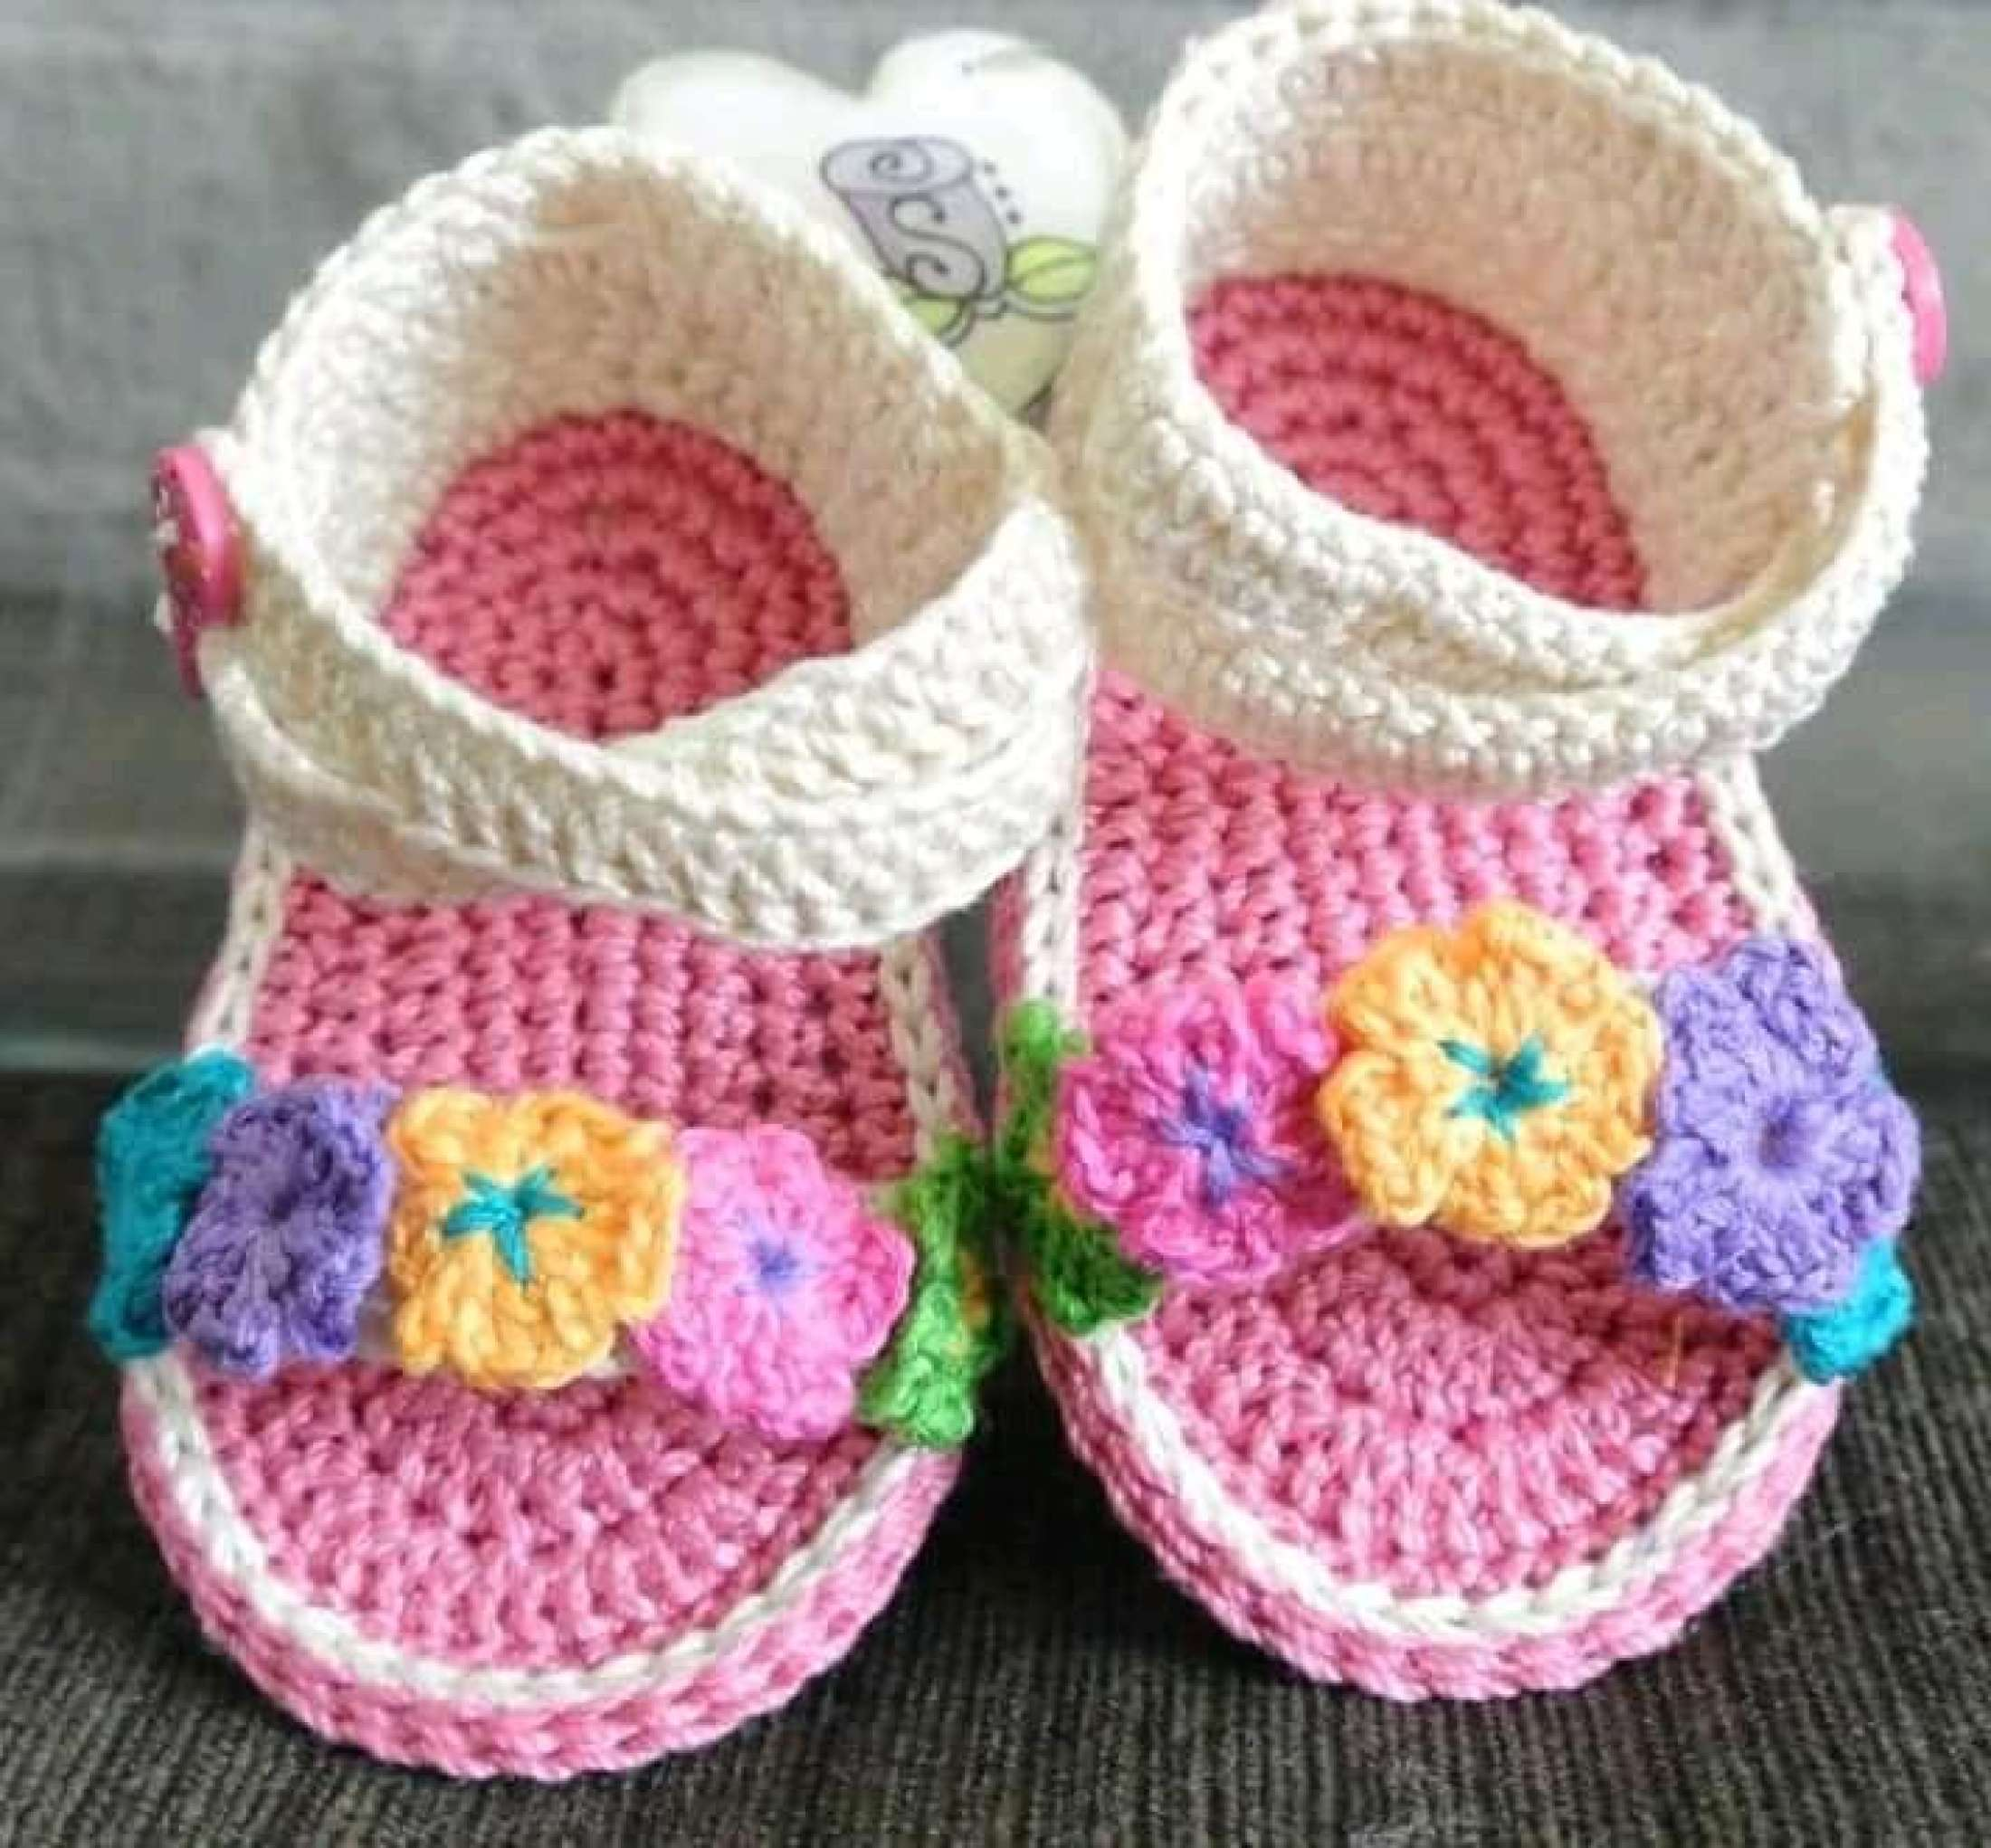 High Quality Wool Hand Made Booties / Shoe For Newborn Baby Boy & Girl For Winter